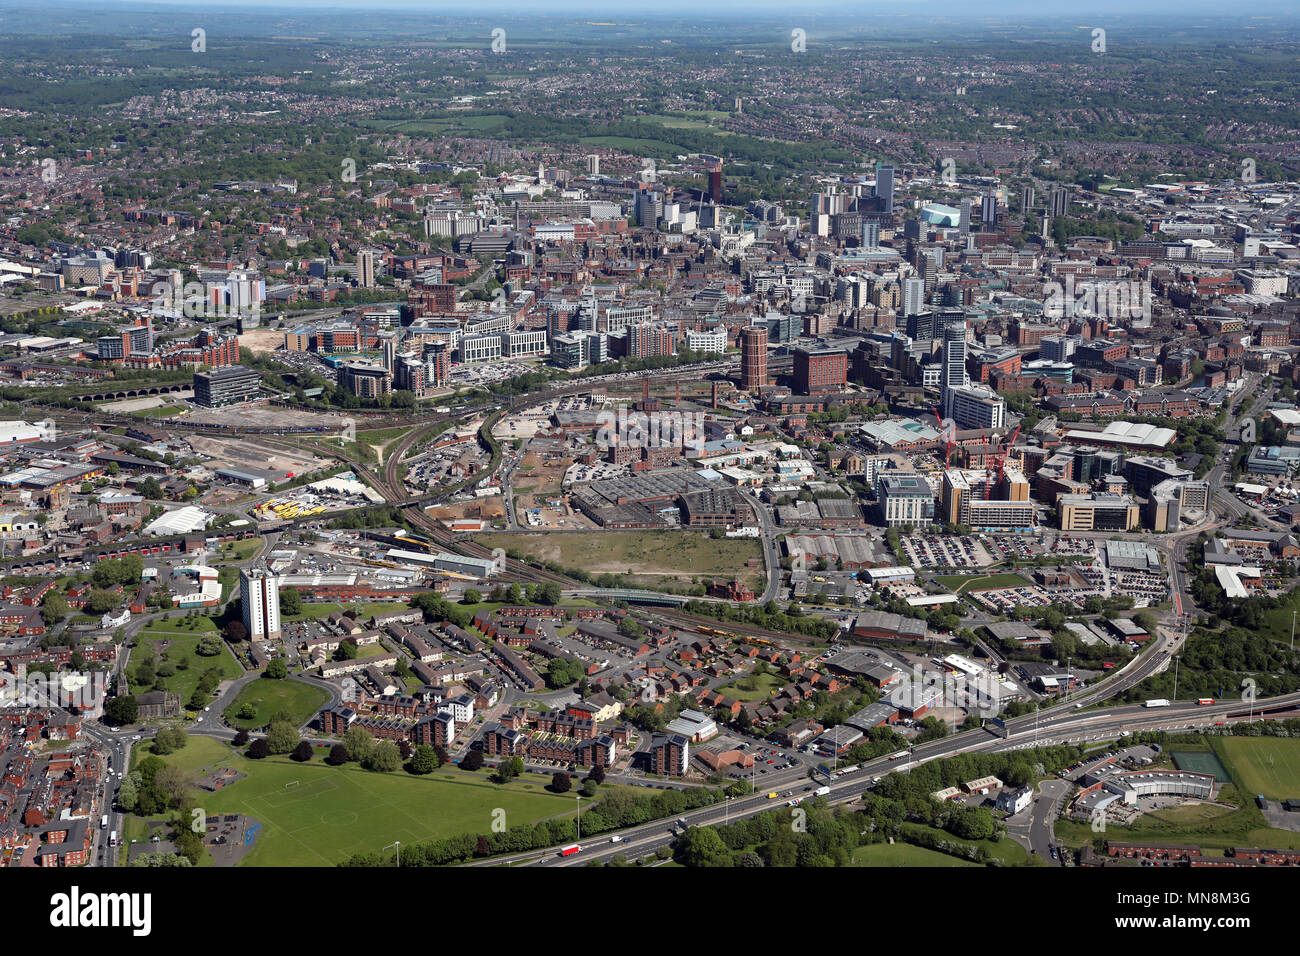 aerial view of Leeds city centre 2018 - Stock Image